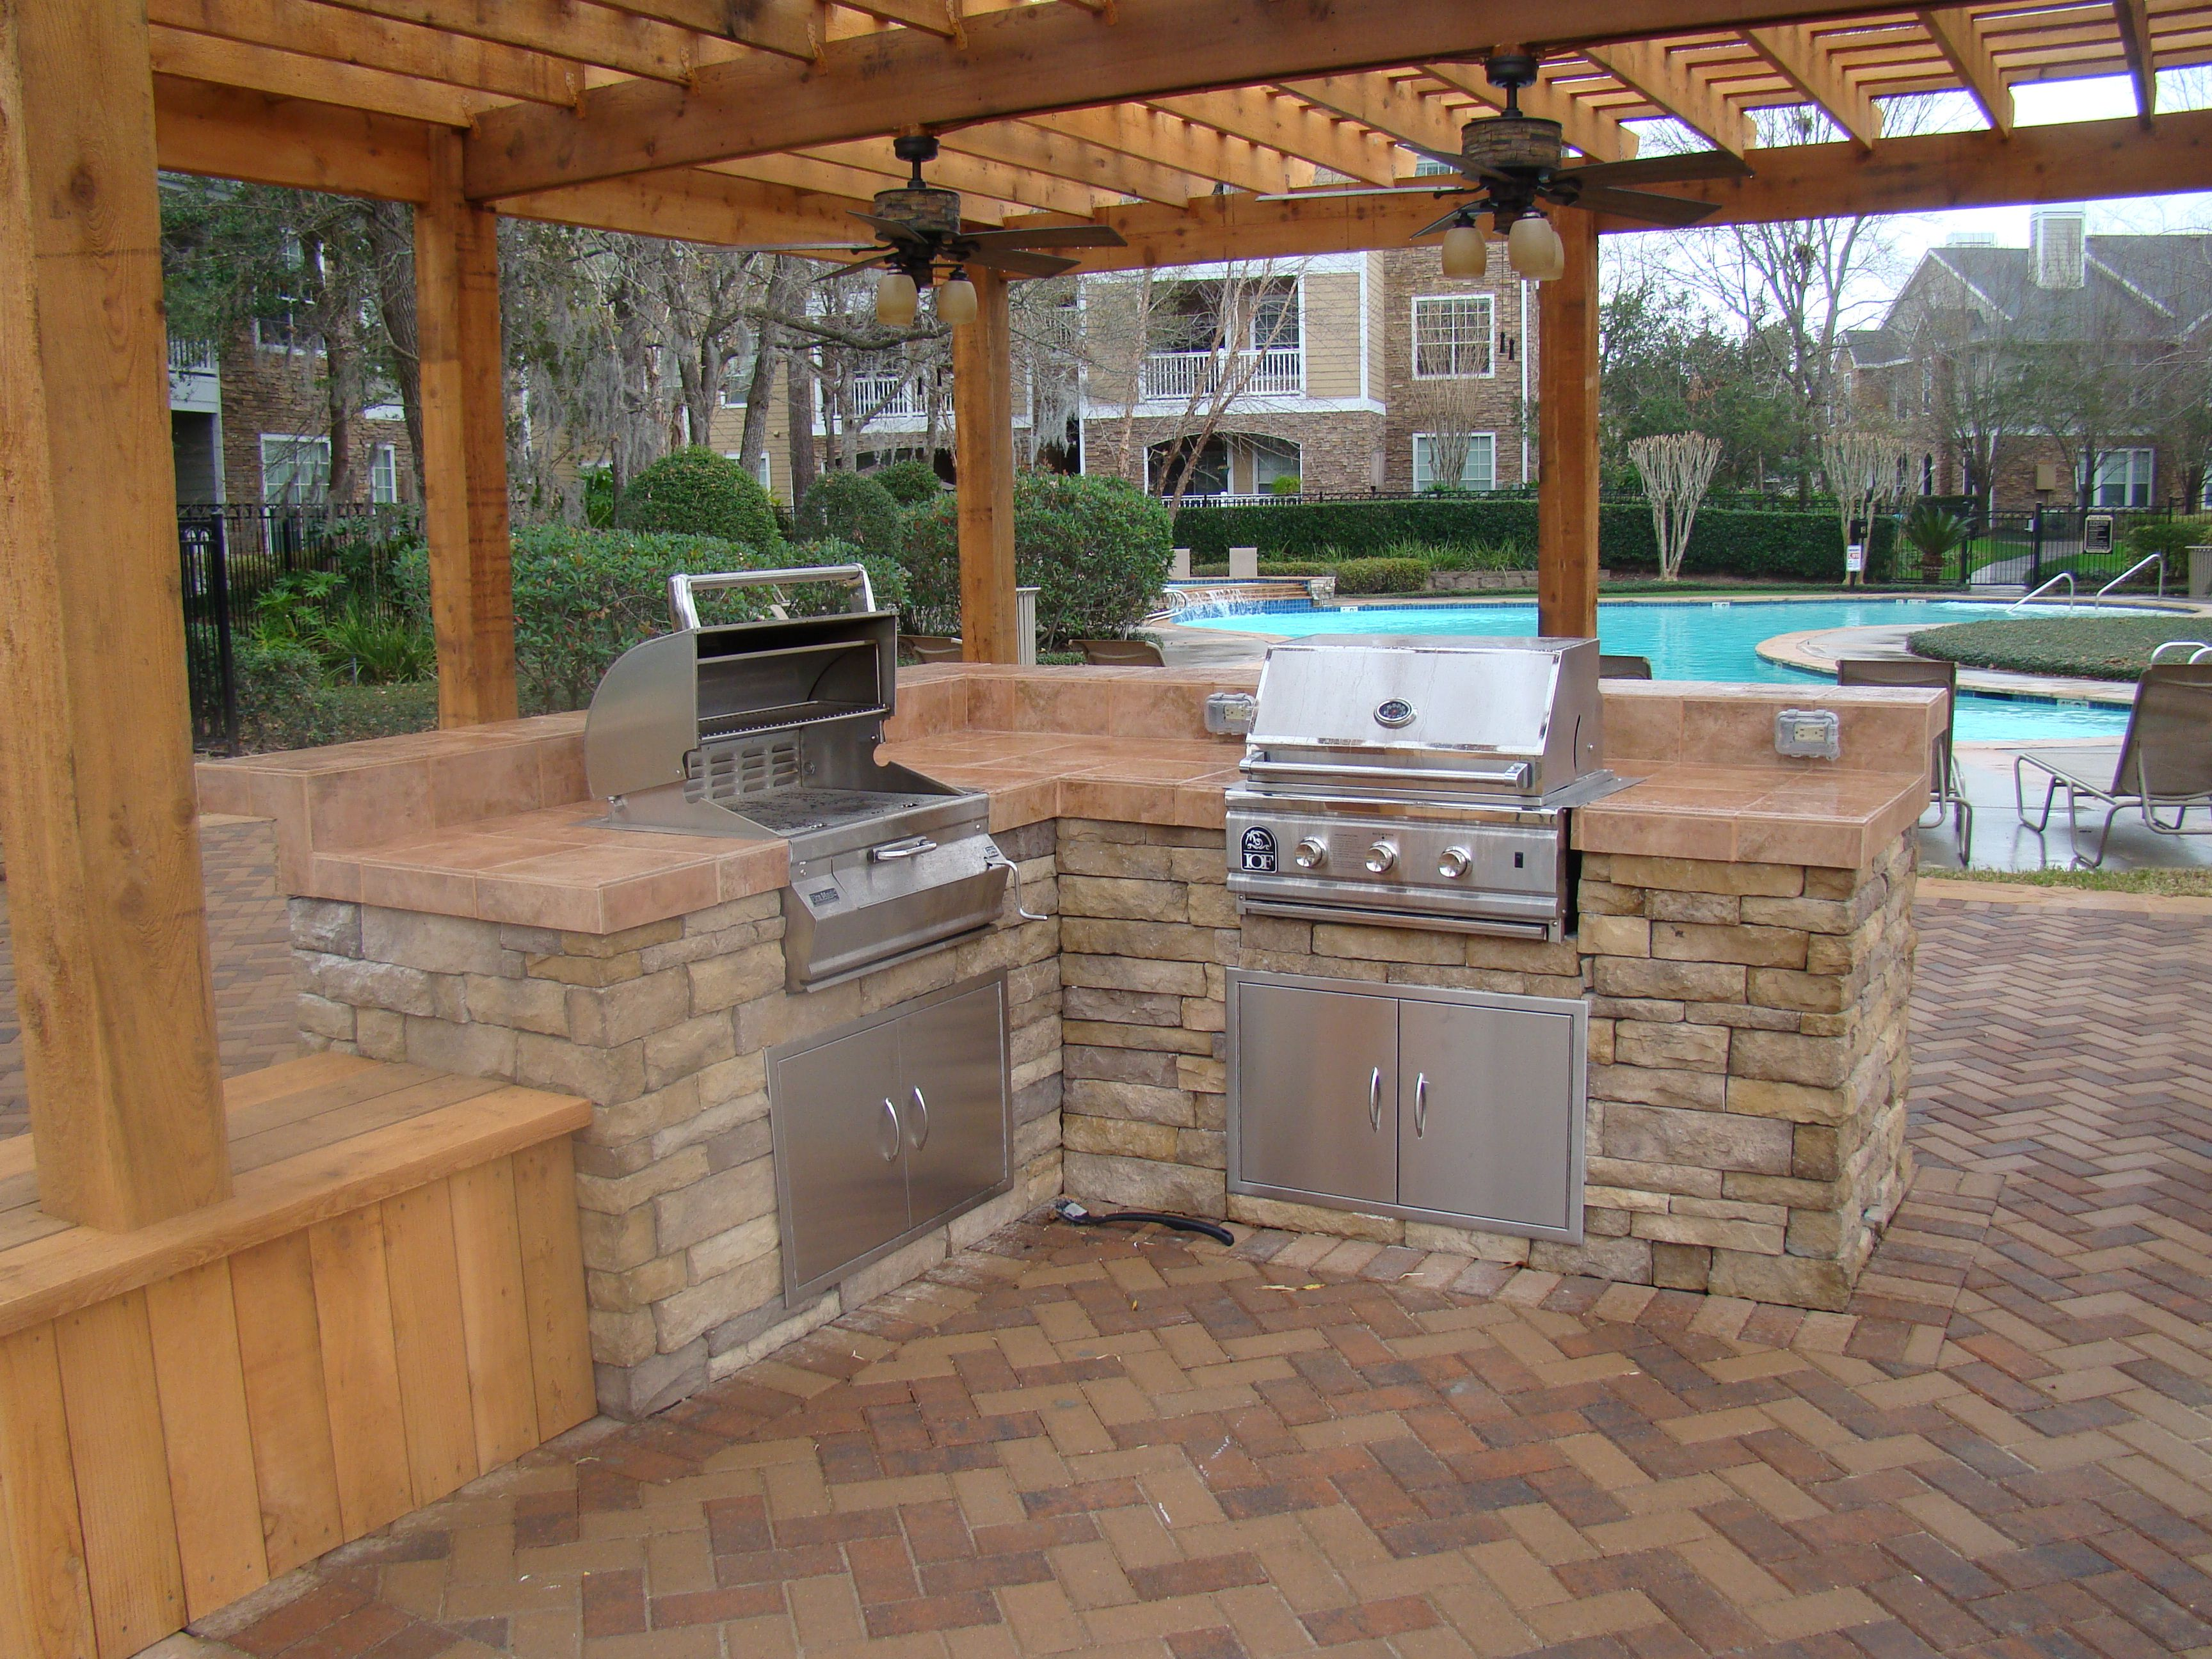 18 outdoor kitchen ideas for backyards kitchens for Outdoor summer kitchens